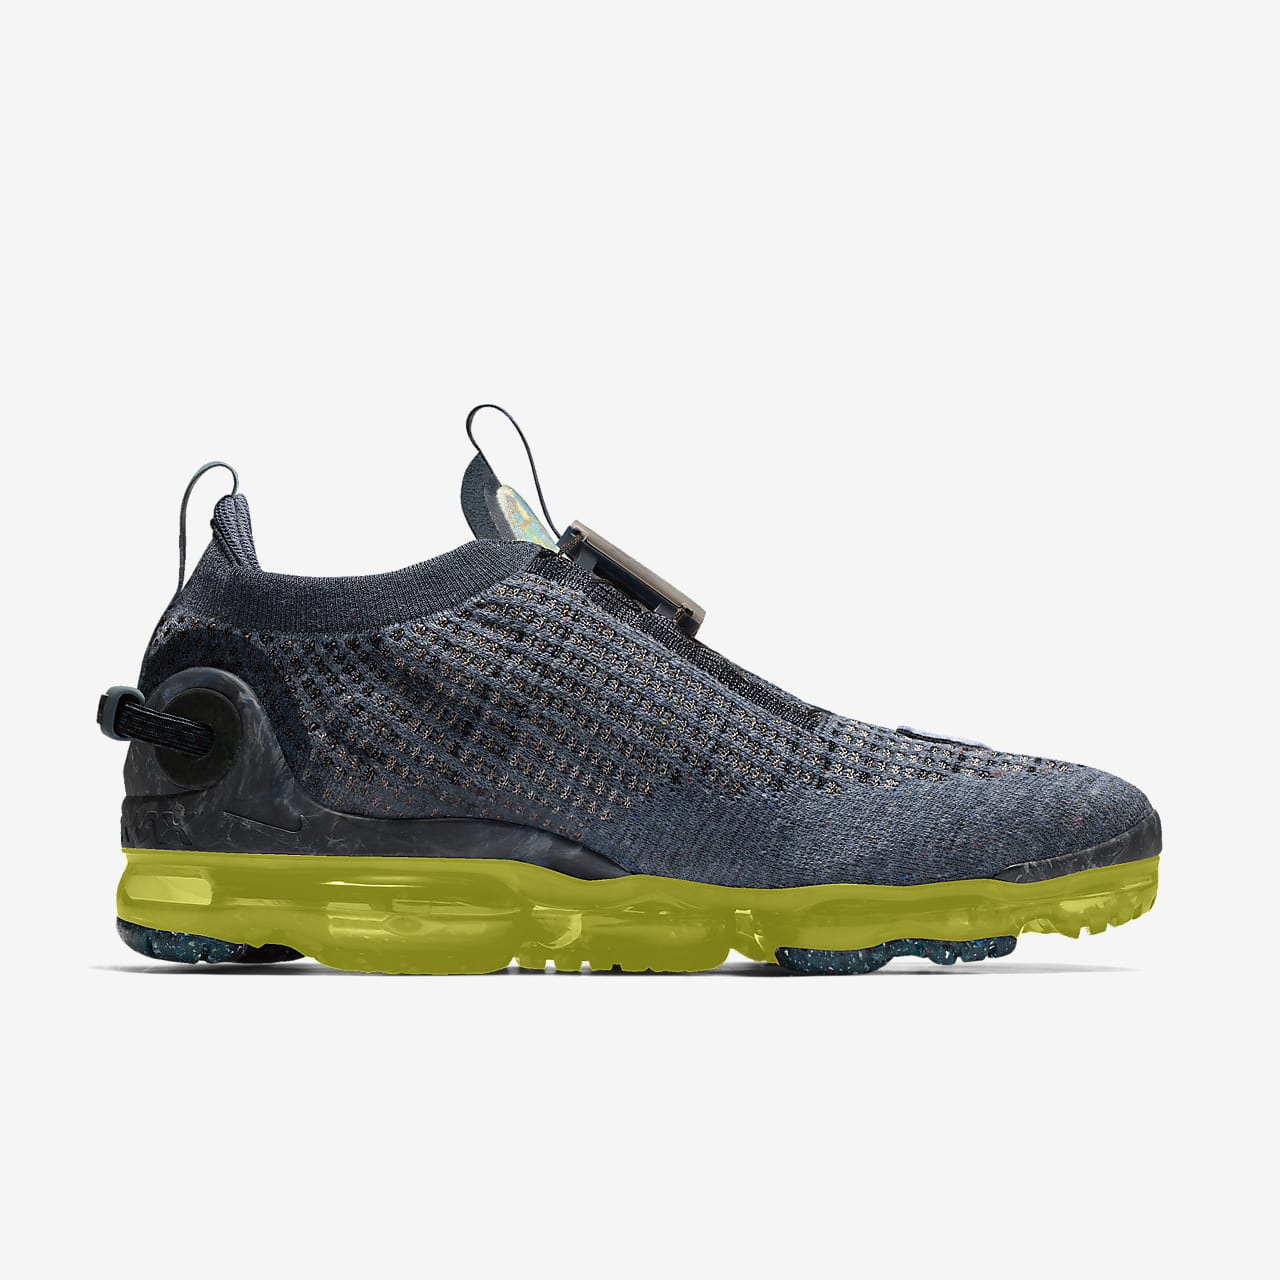 Chaussure lifestyle personnalisable Nike Air VaporMax 2020 Flyknit By You